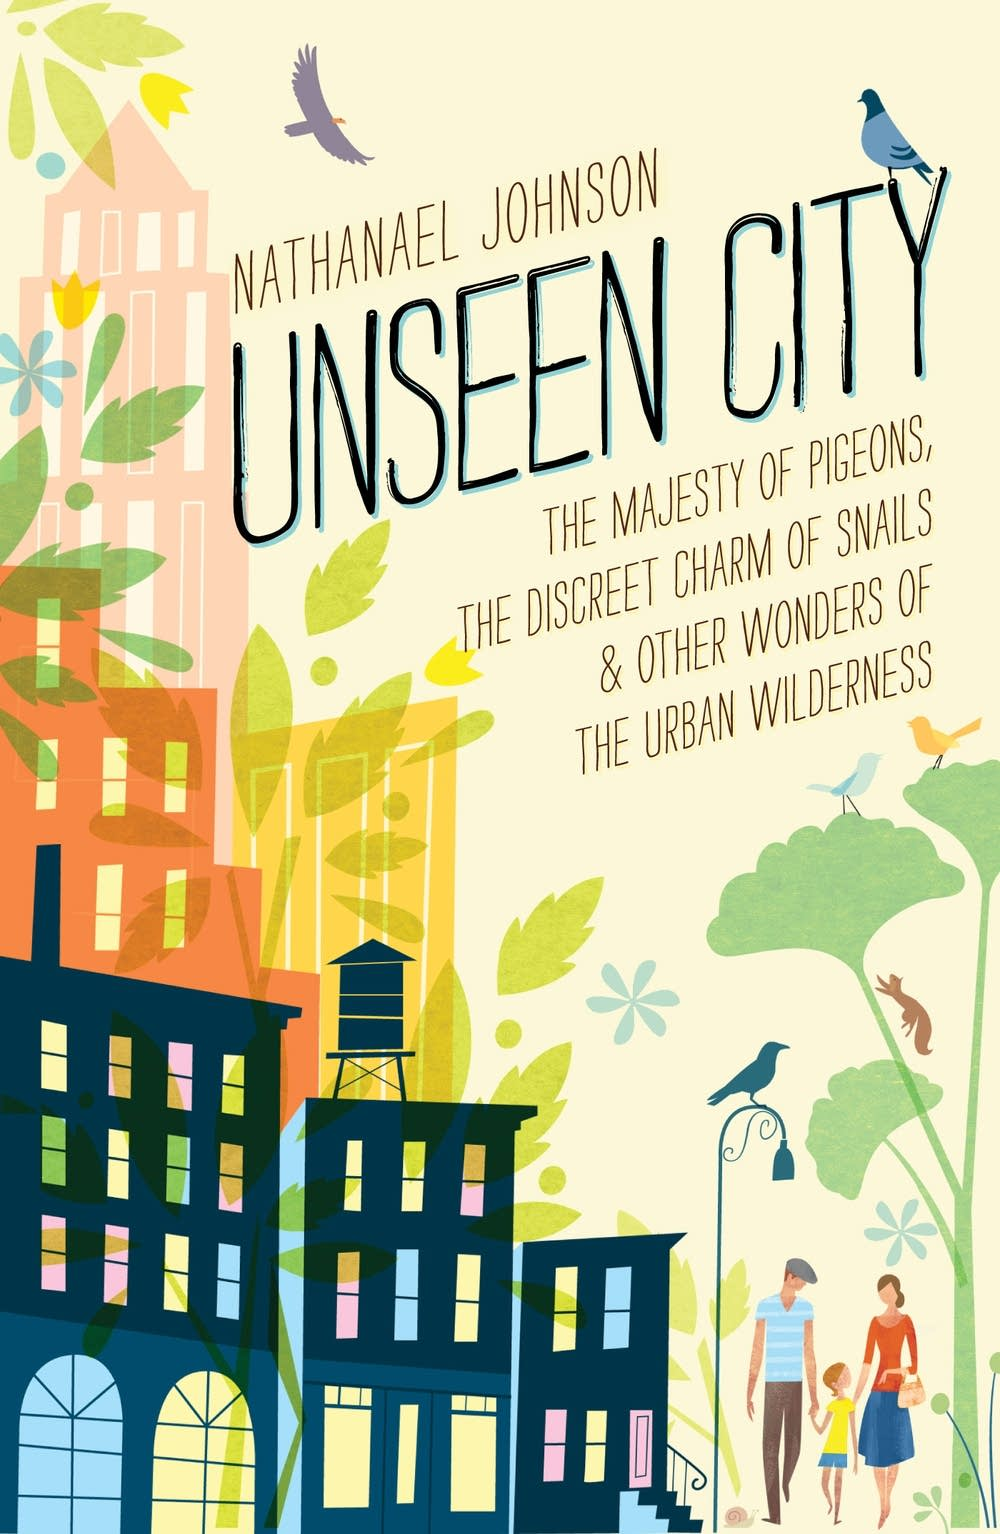 'Unseen City' by Nathanael Johnson